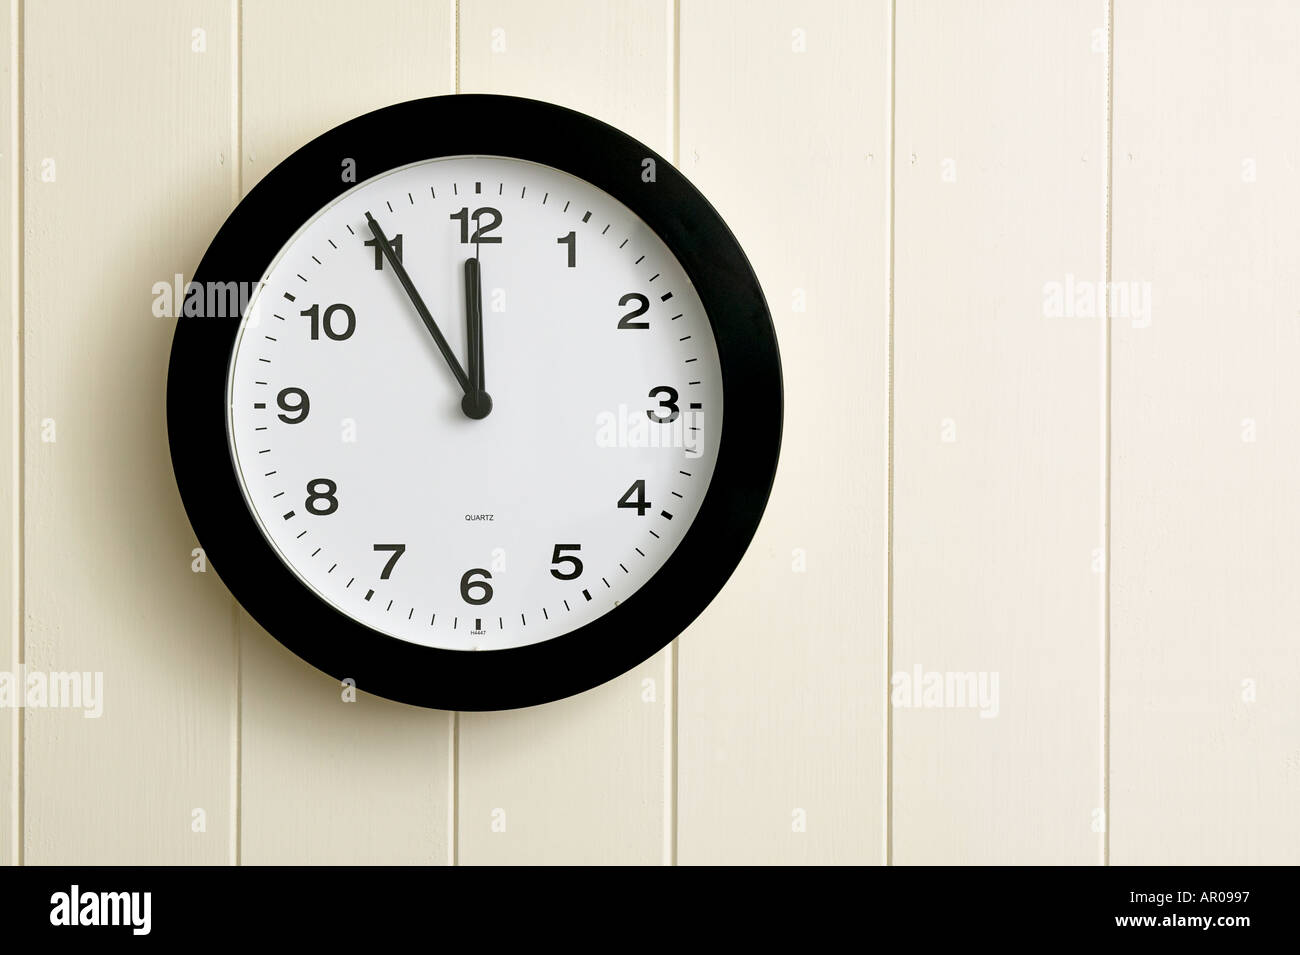 wall clock showing time at five to twelve 1155 2355